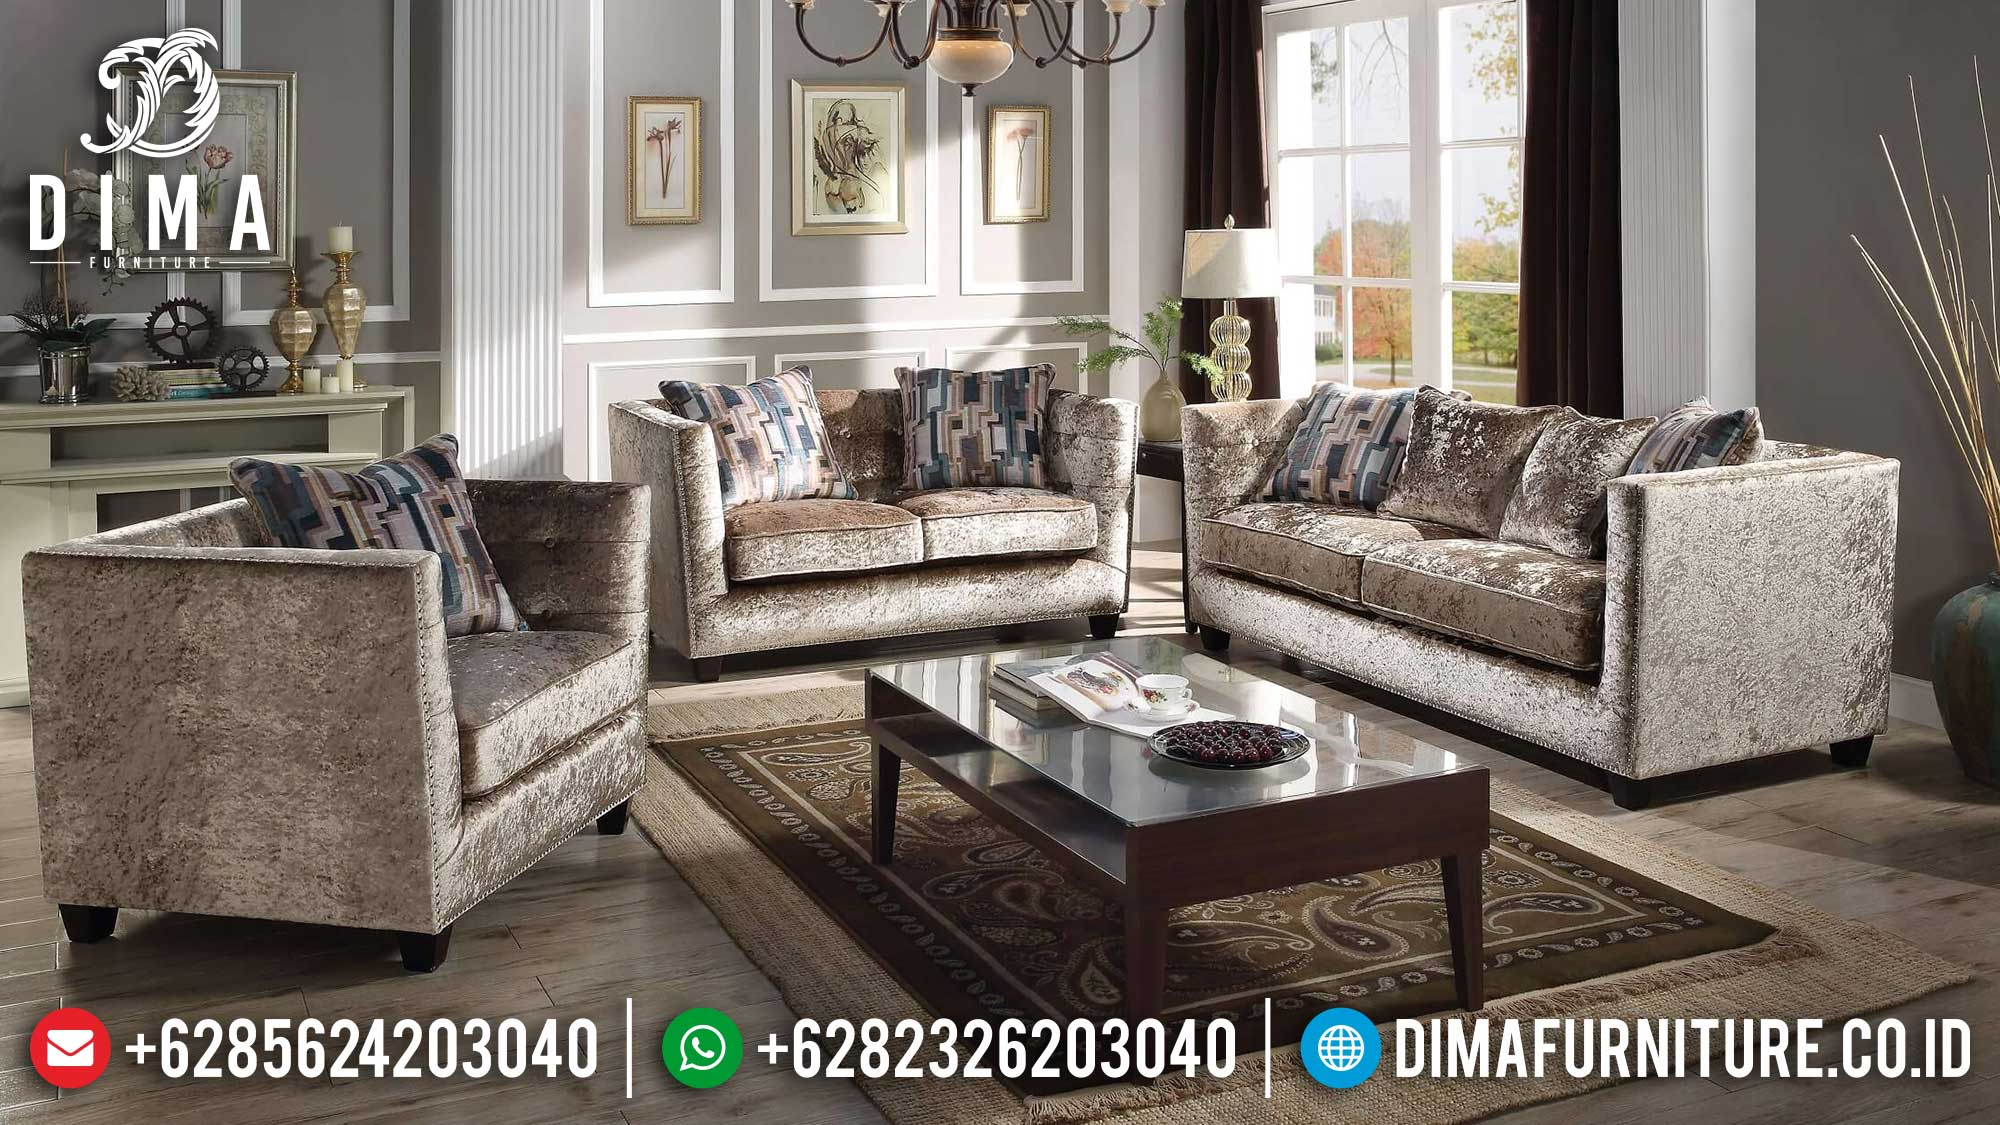 Excellent Fabric Sofa Tamu Minimalis Jepara Terbaru Natural Jati Perhutani Mm-0976